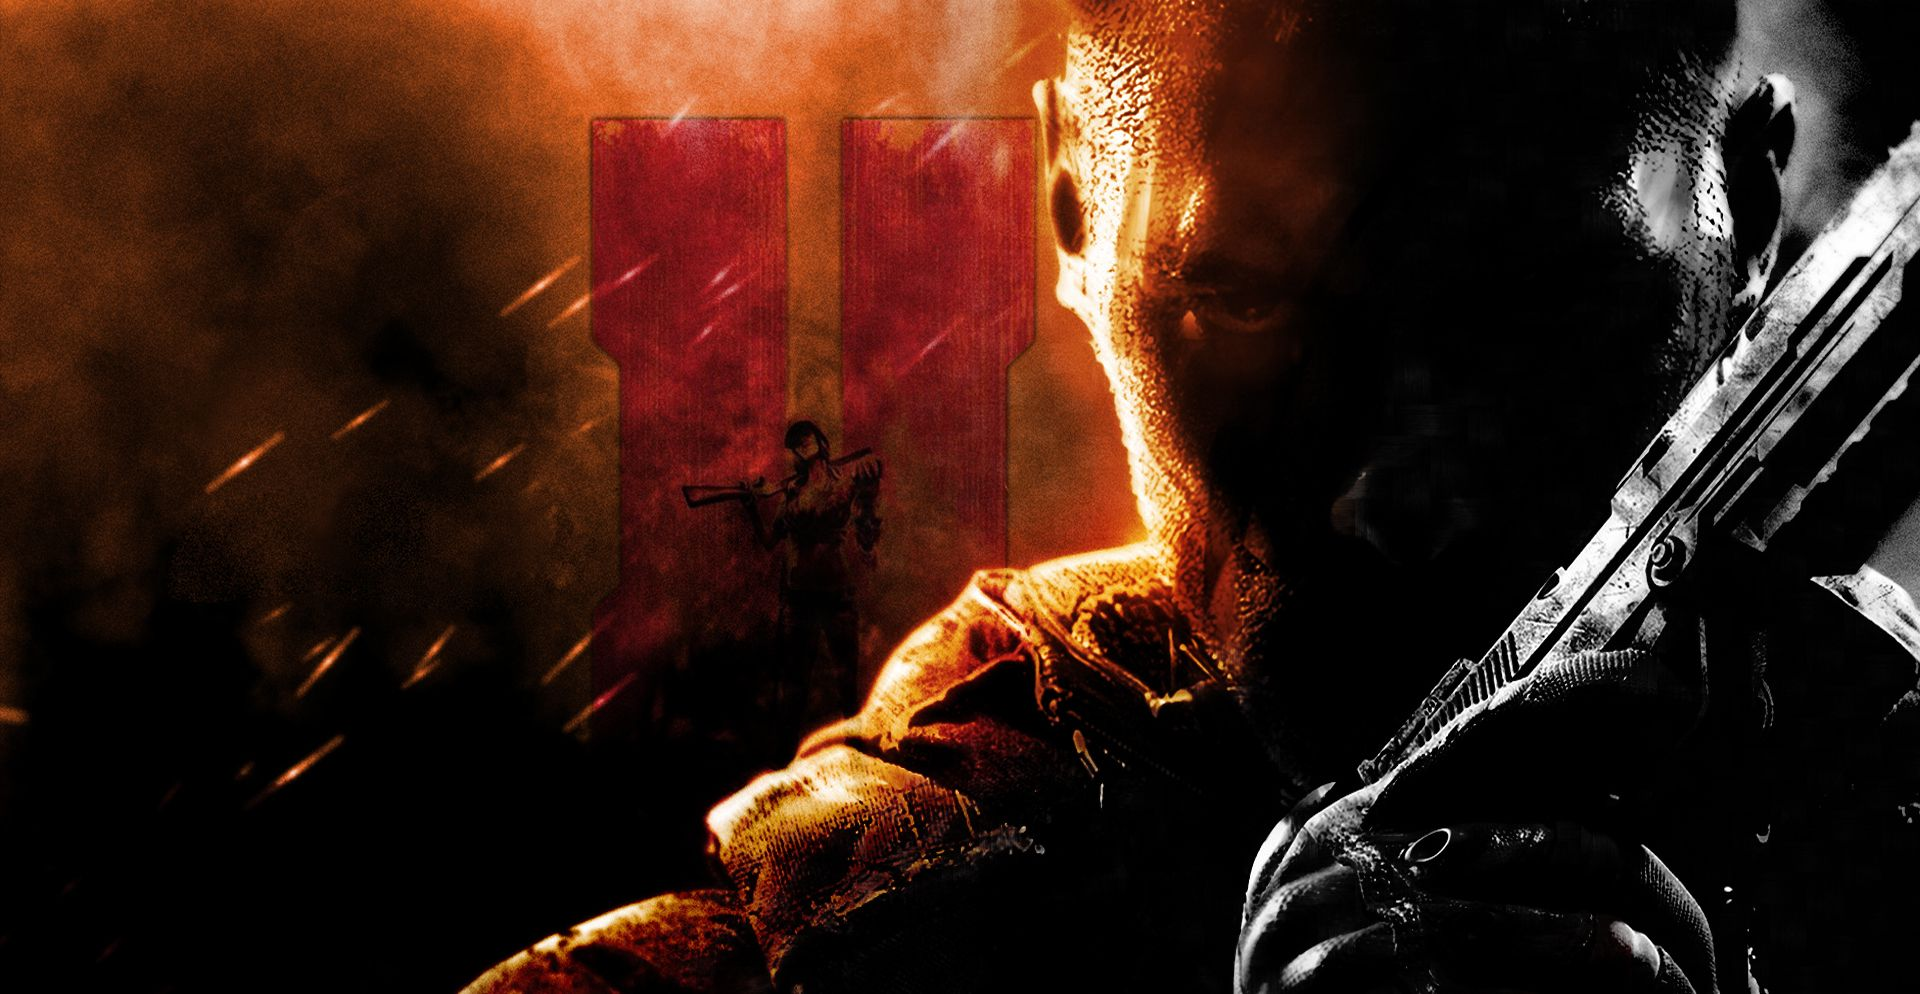 Bo2 Wallpaper Call Of Duty Black Call Of Duty Black Ops